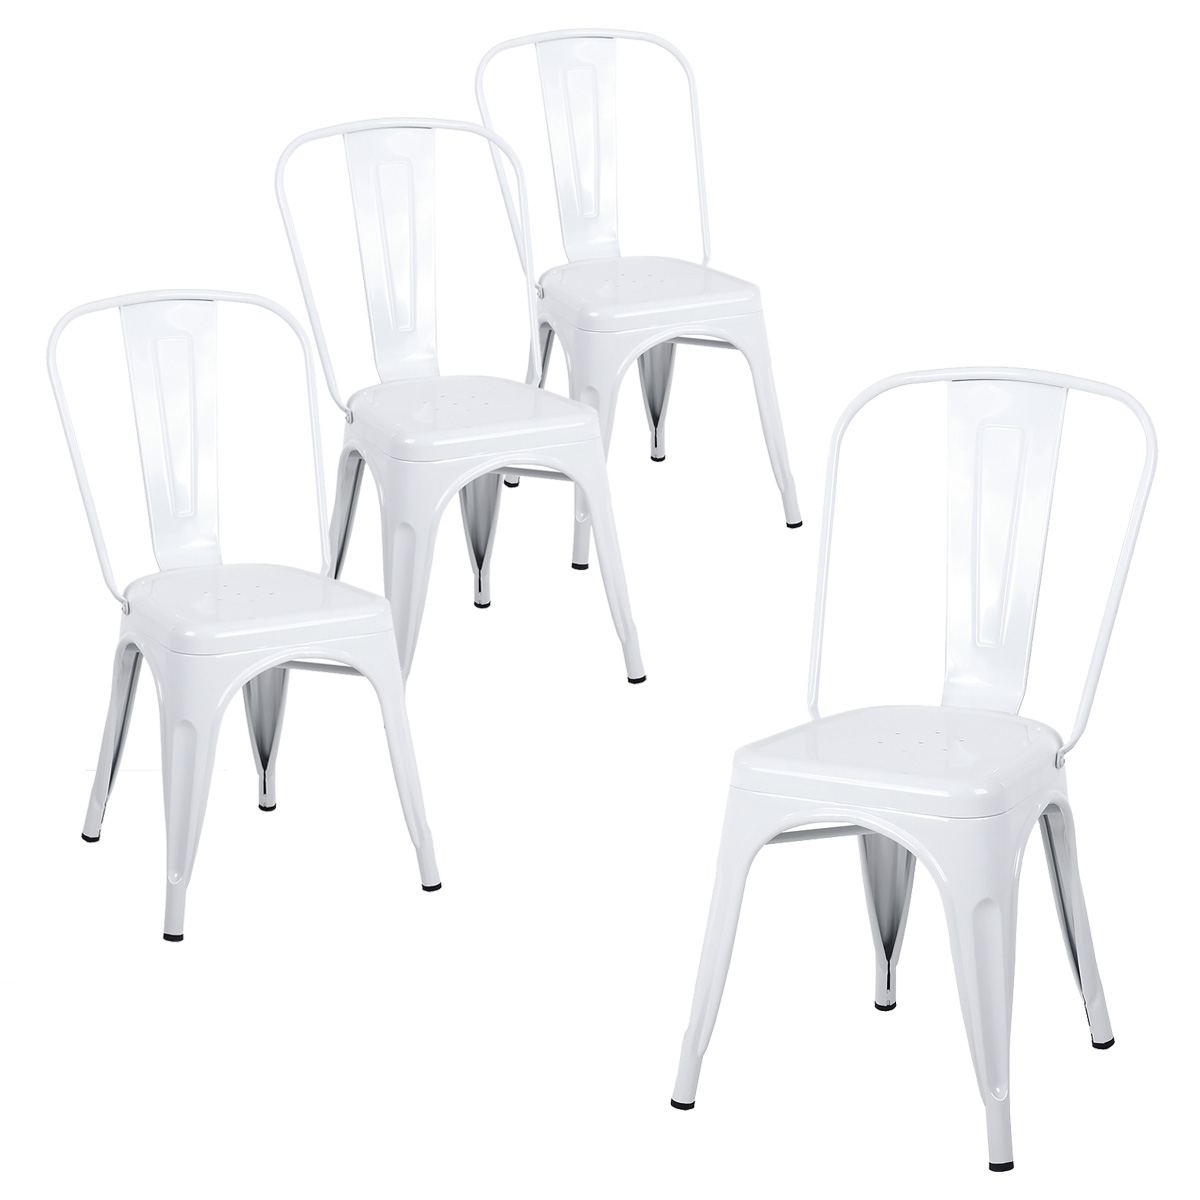 White Stackable Chairs Buschman Set Of Four White Tolix Style Metal Indoor Outdoor Stackable Chairs With Back